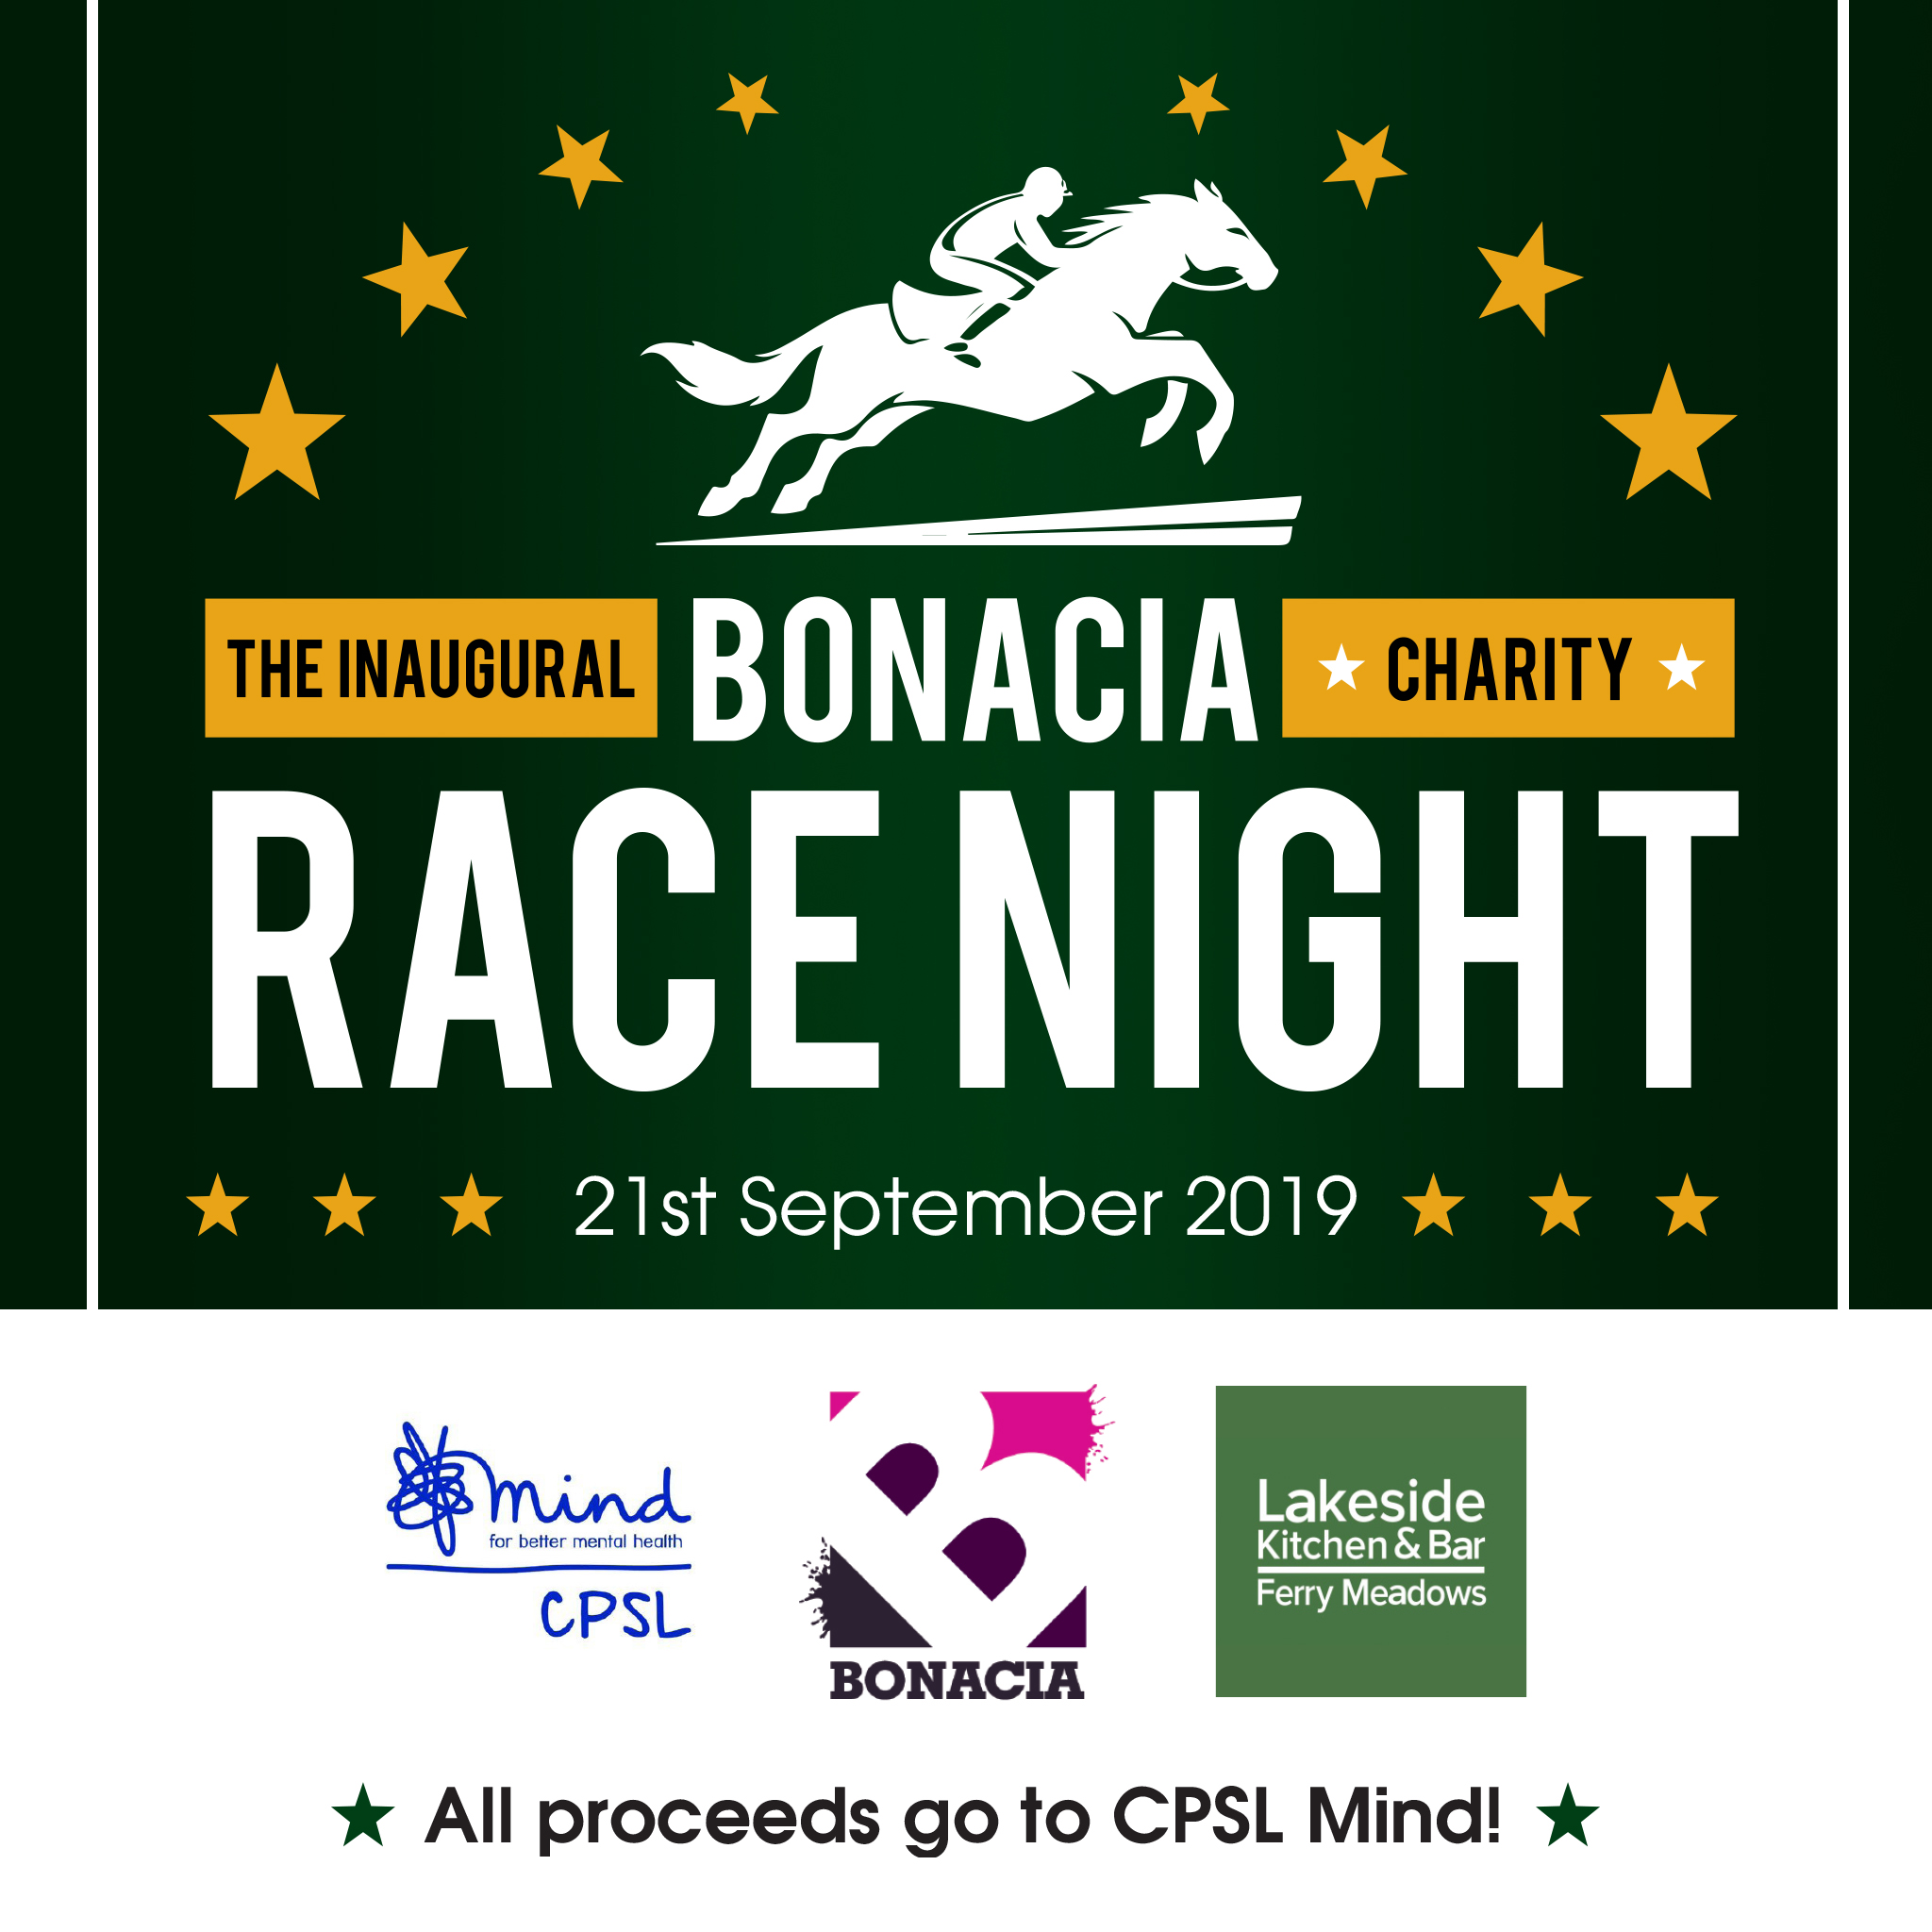 Charity Race Night for CPSL Mind on 21st September 2019